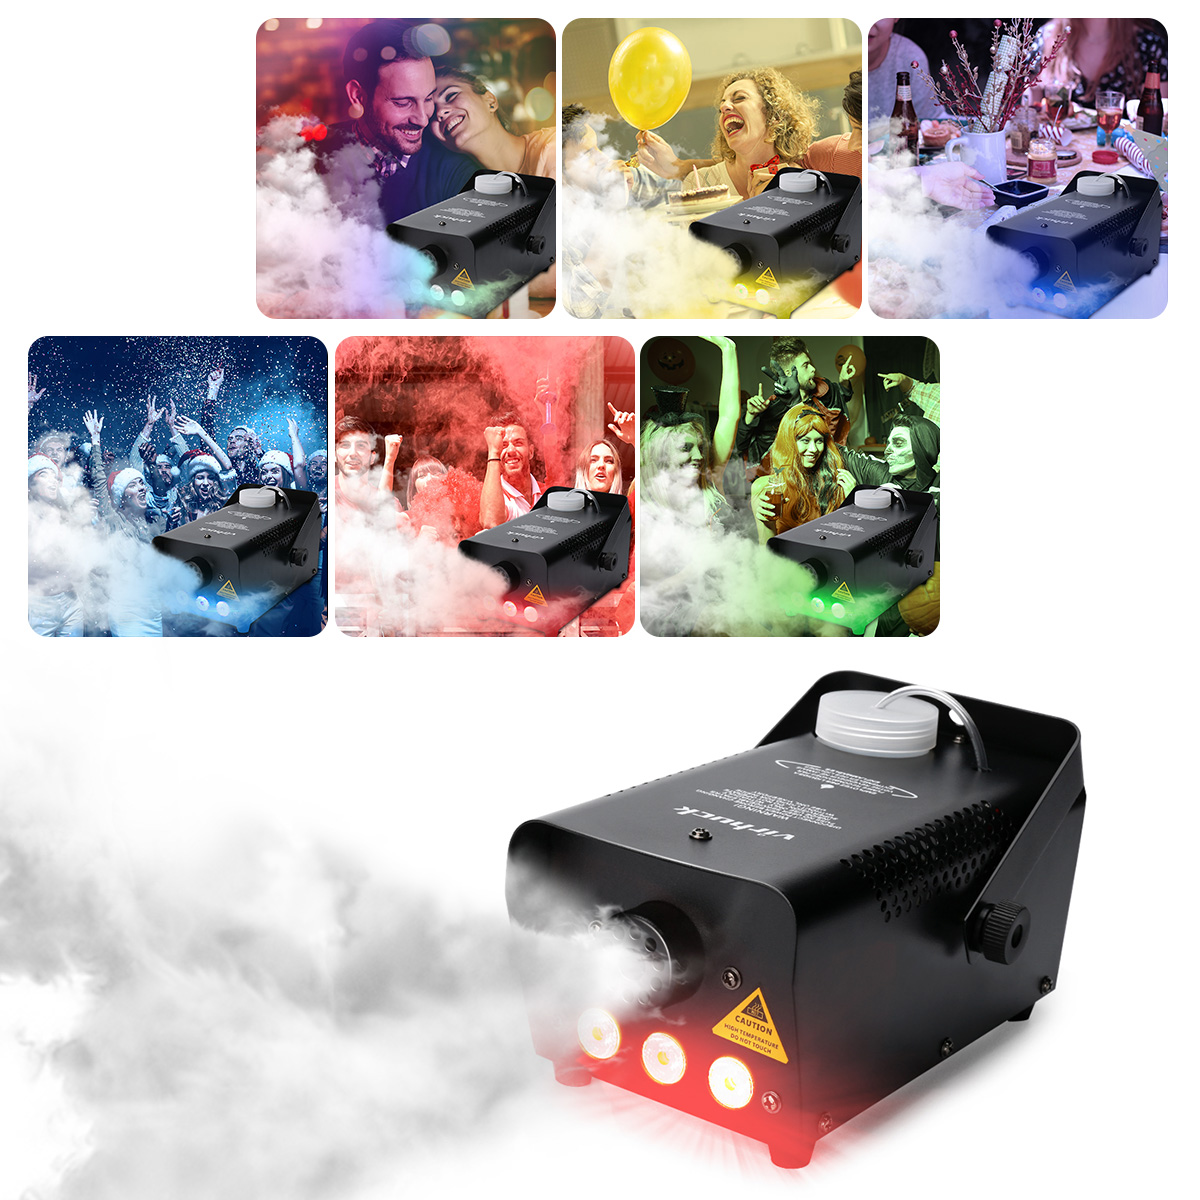 500W Portable RC Fog Machine with Wireless Remote Control Equipped with 7 Colors LED Lights, Professional Smoke Machine, Smoke Machine for Halloween Weddings Christmas Parties Dance/Drama by Virhuck